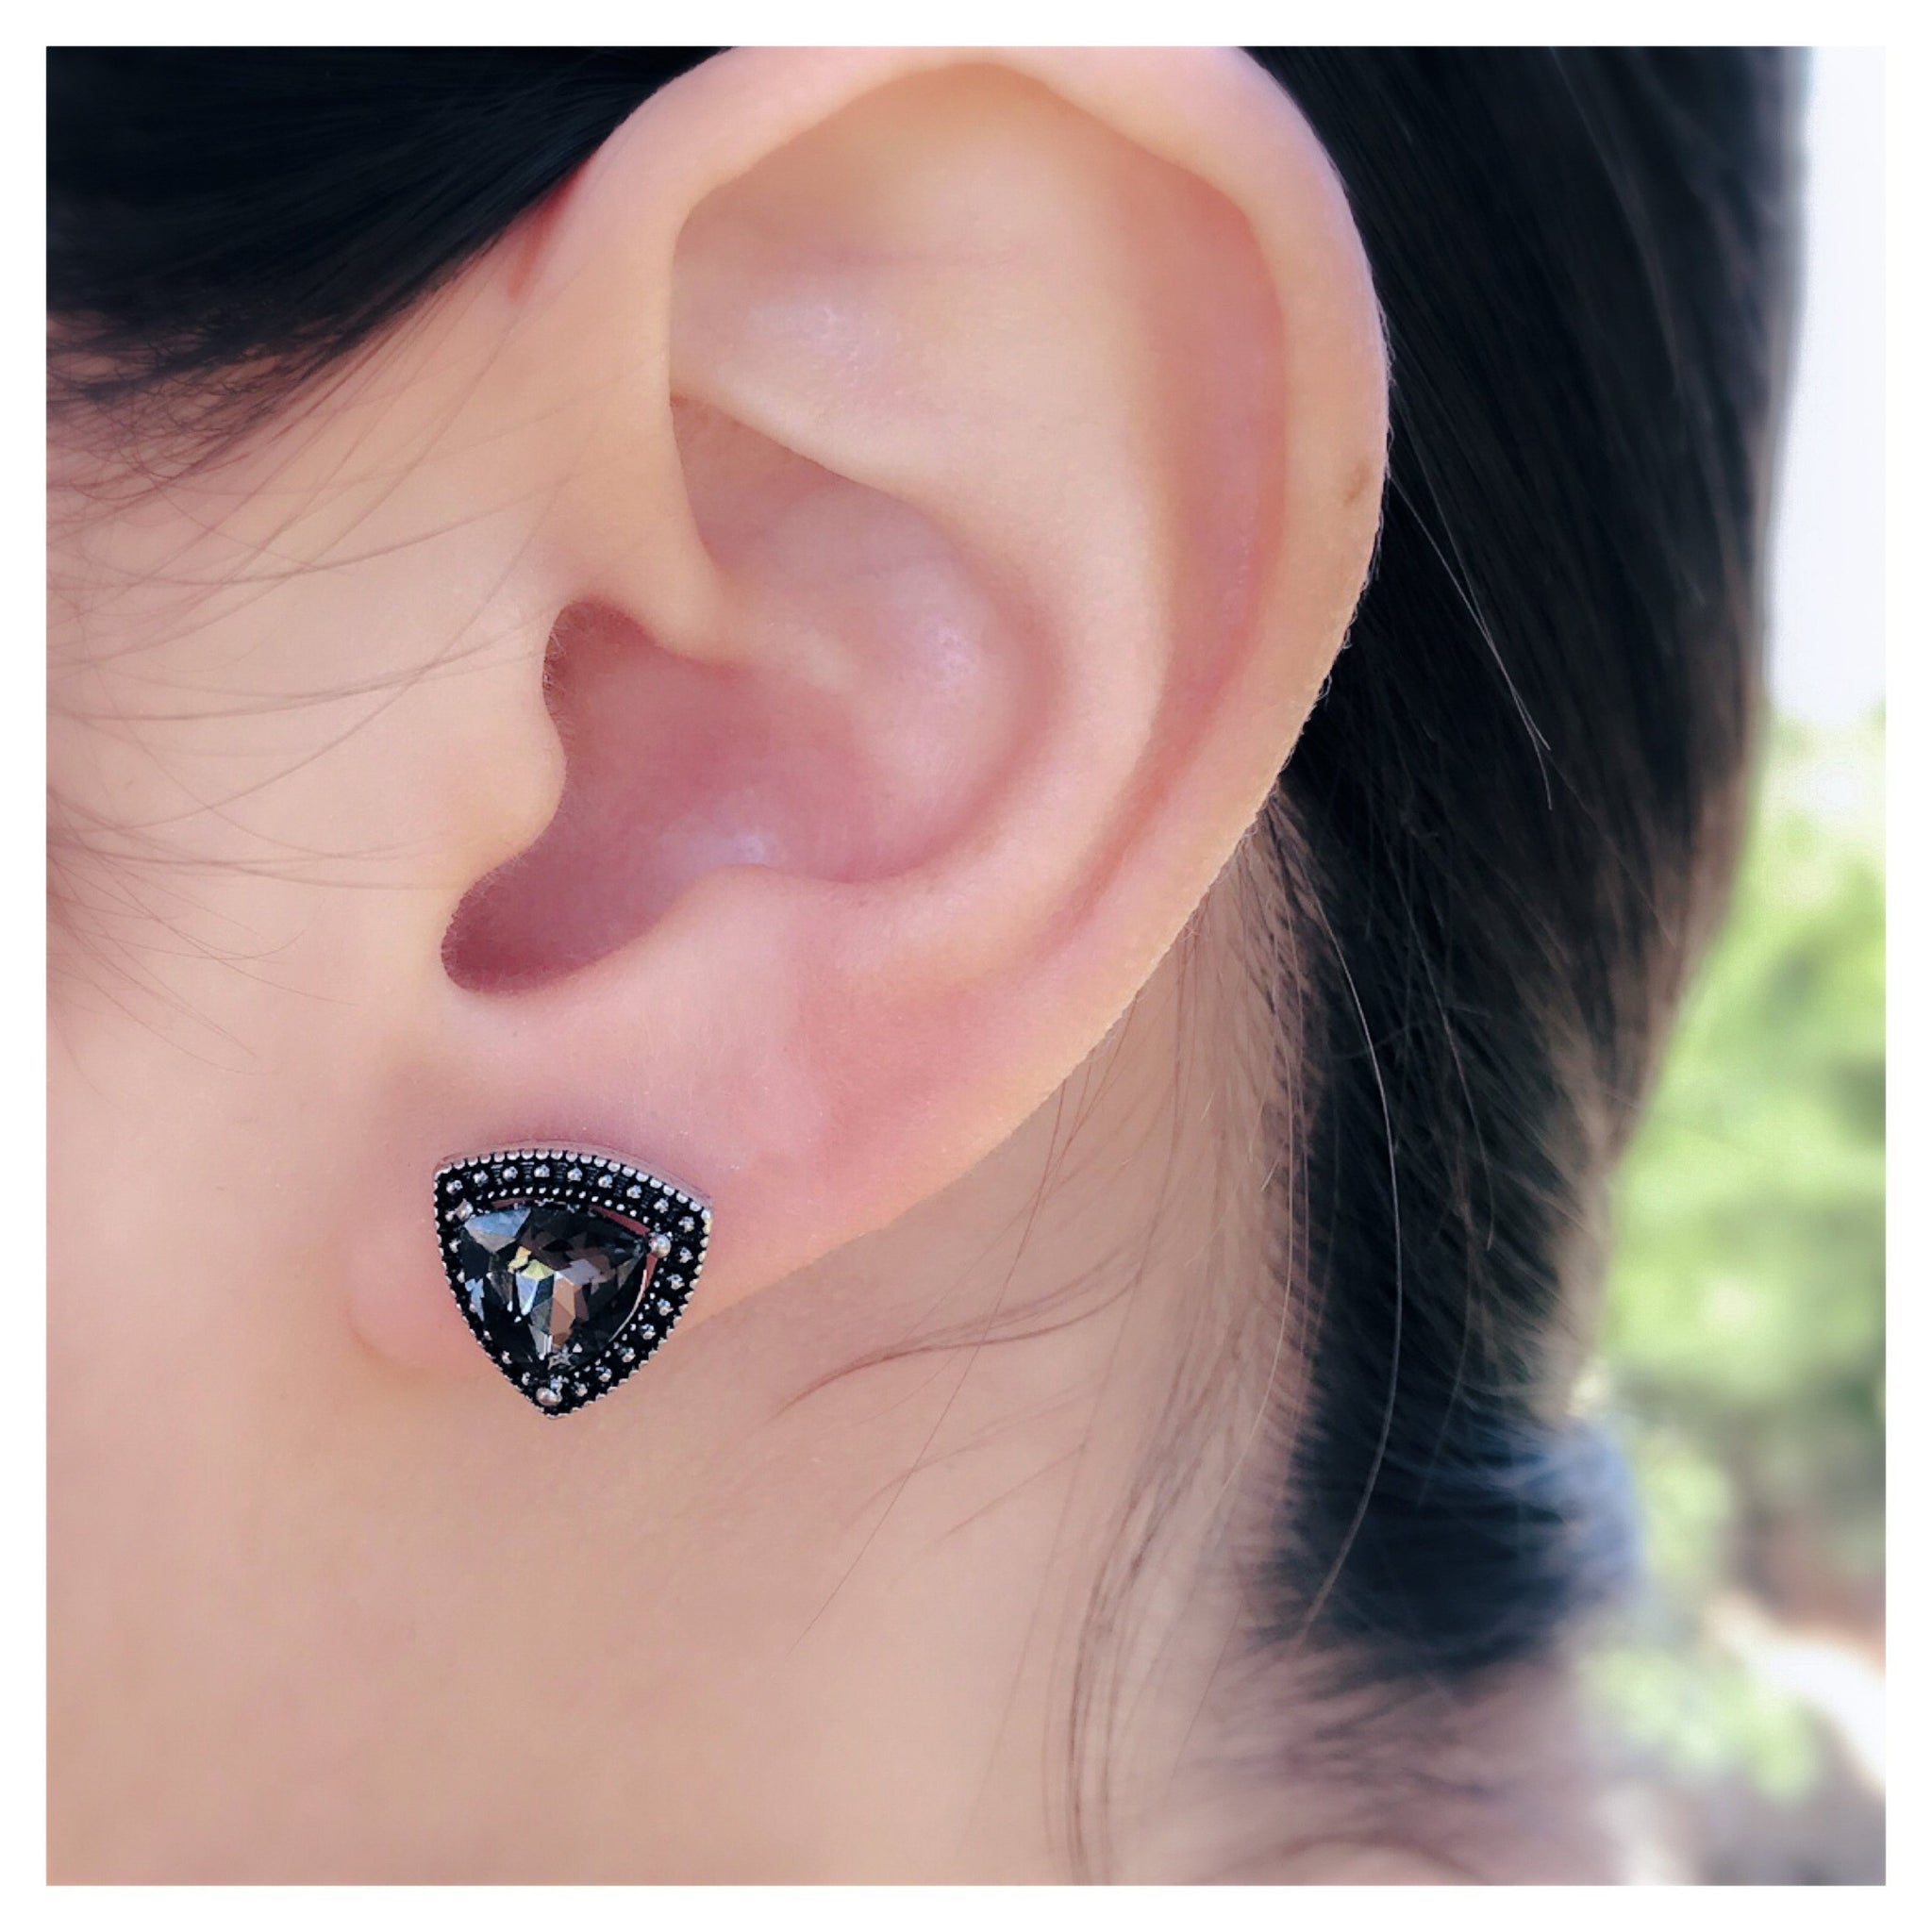 ted crystal lyst black earring product stud in baker jewelry gallery normal